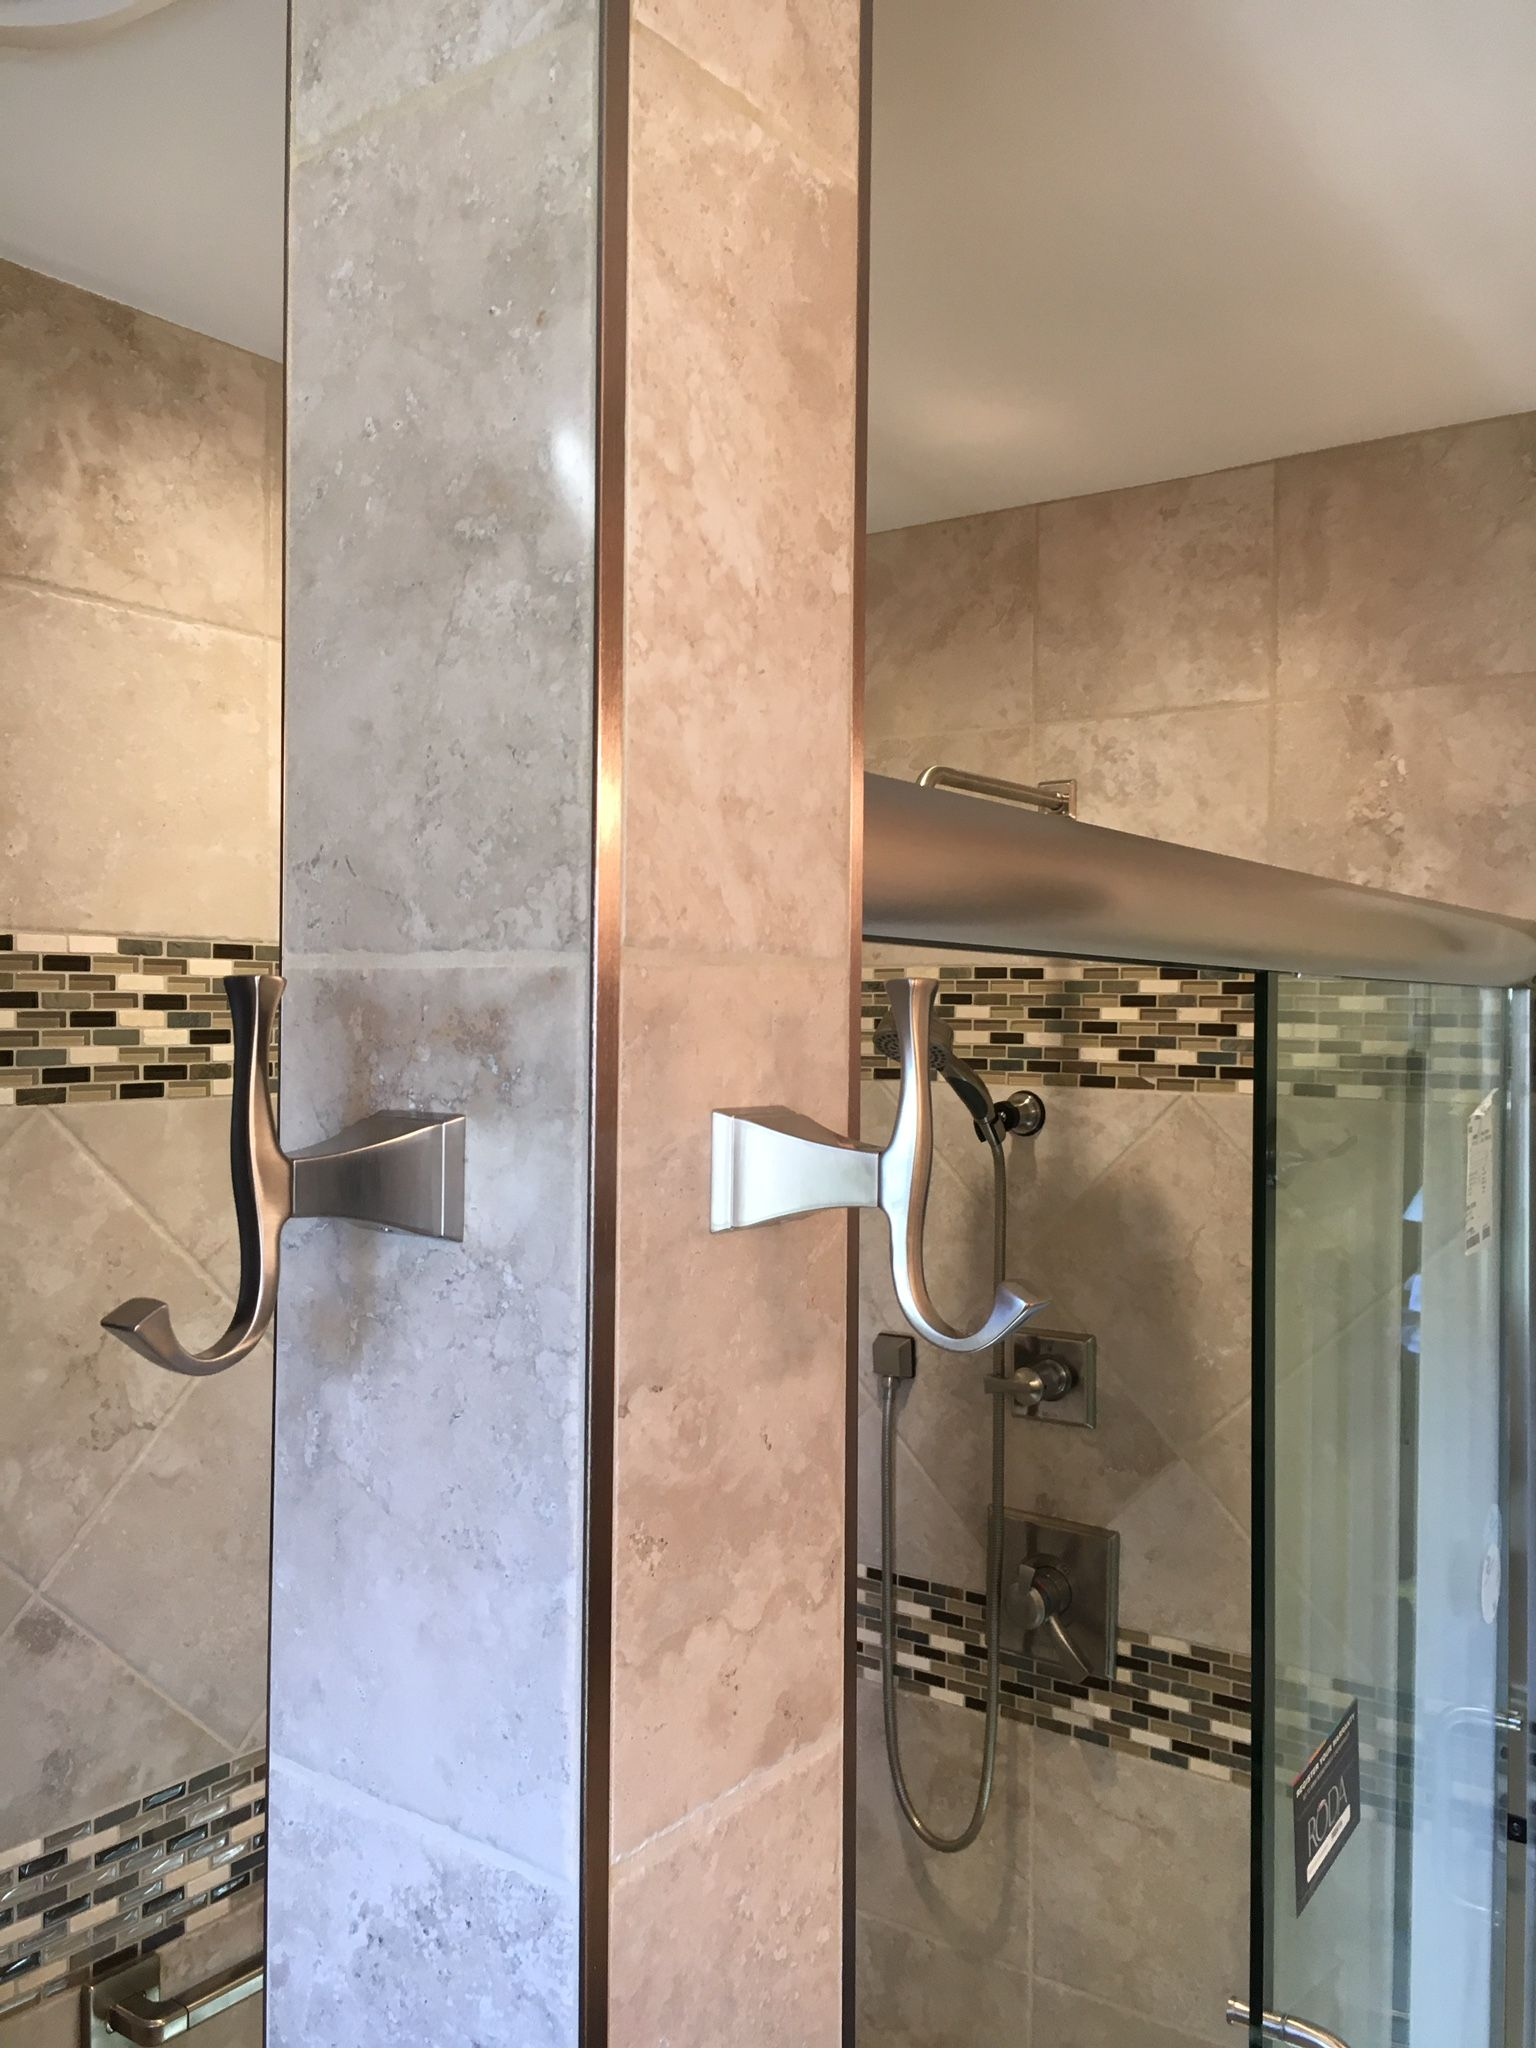 Stainless steel bathroom accents with metal Schluter ...